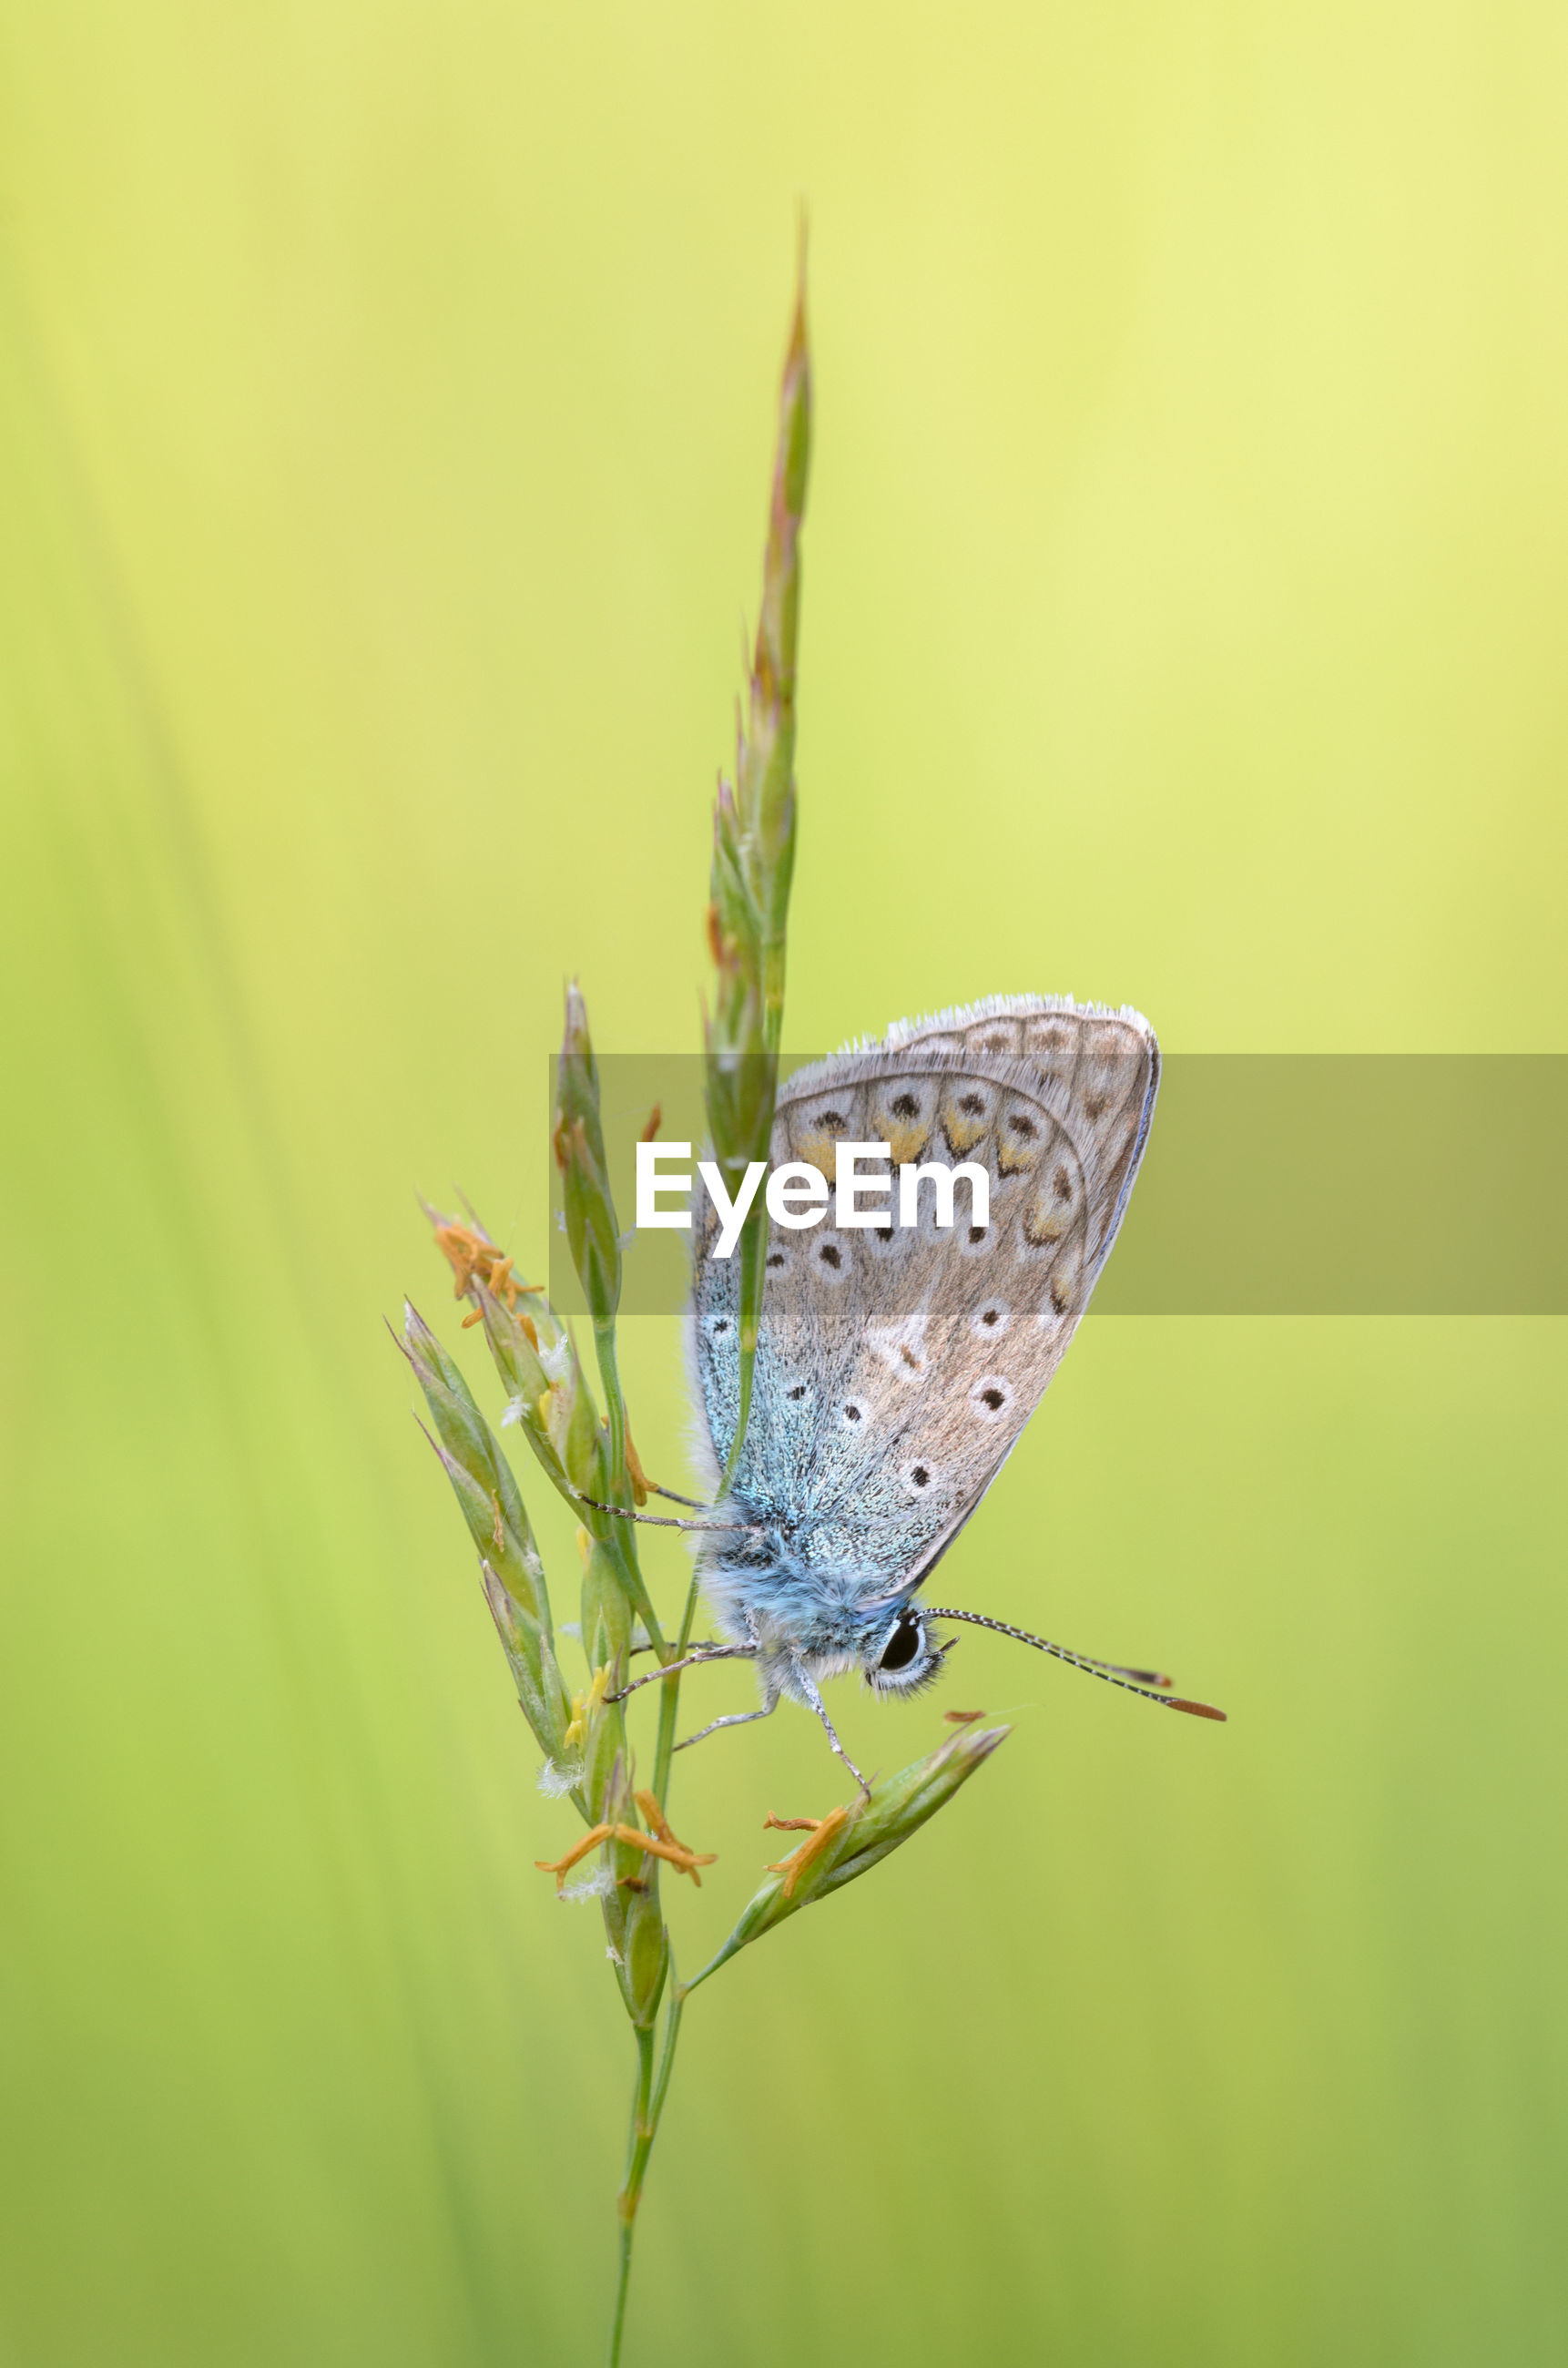 CLOSE-UP OF BUTTERFLY ON LEAF OUTDOORS